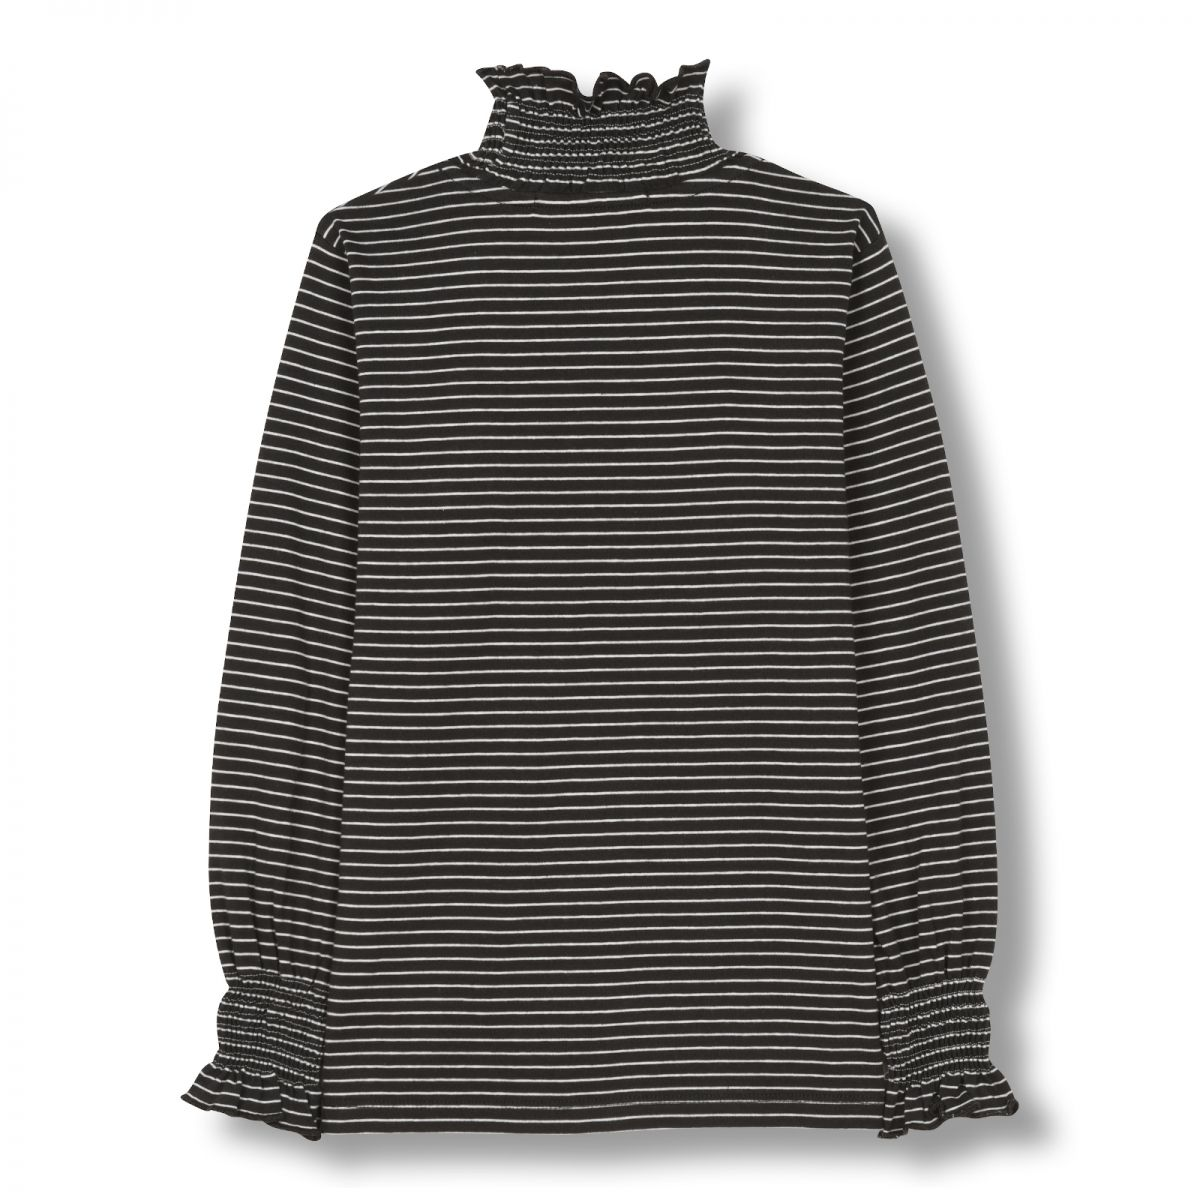 Finger in the nose - Teeroko Blouse Black - 1